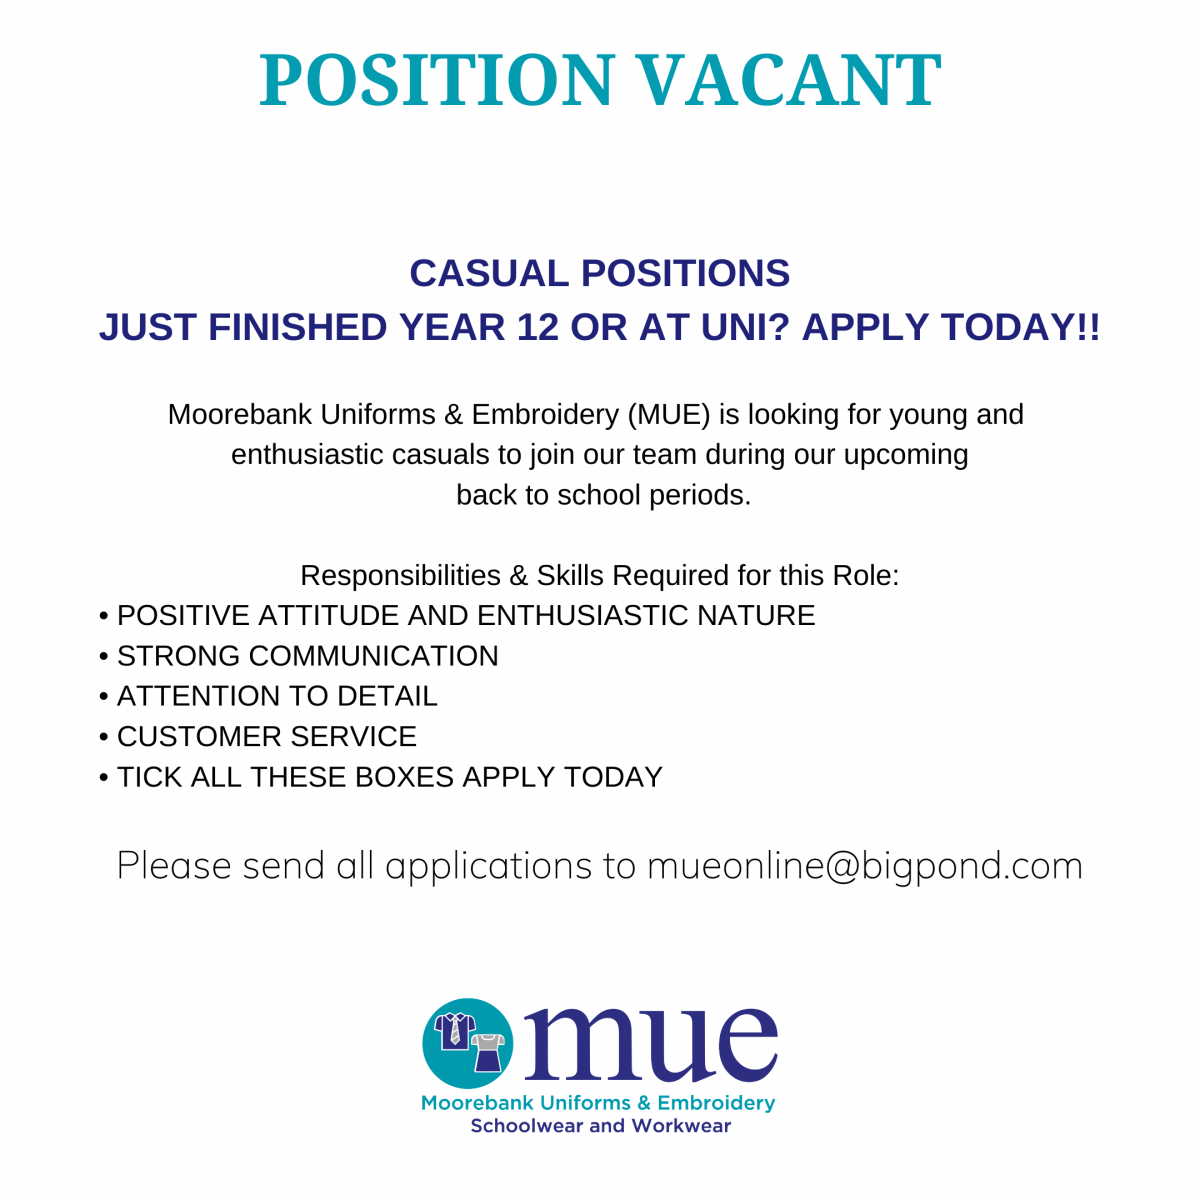 Casual Positions Vacant